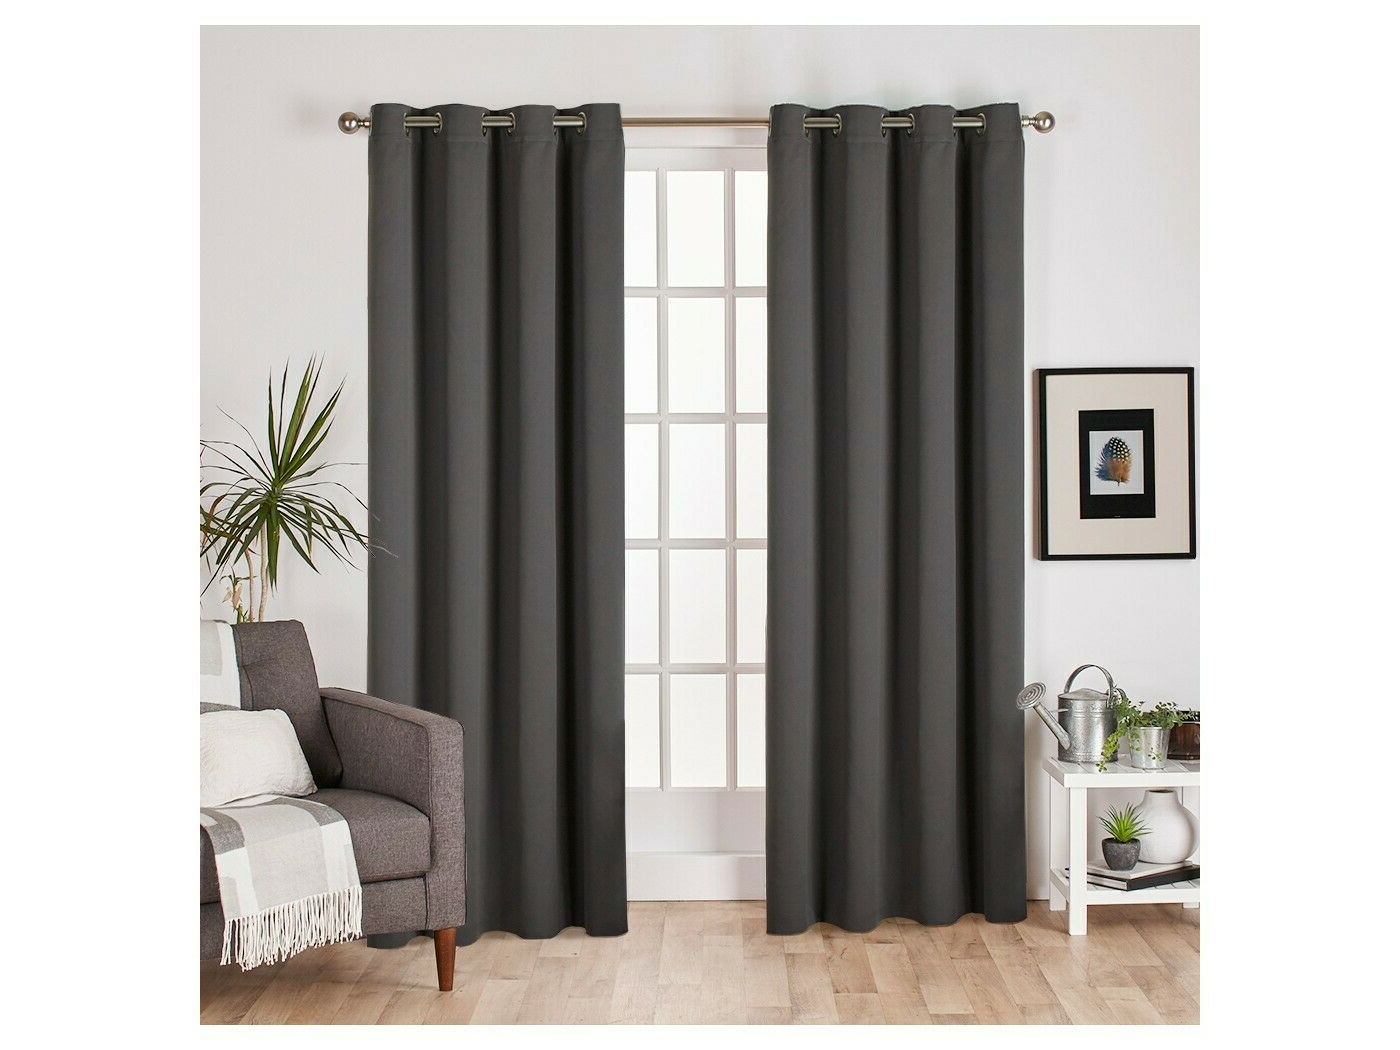 Set Of 2 Sateen Twill Weave Insulated Blackout Grommet Top Regarding Widely Used Sateen Twill Weave Insulated Blackout Window Curtain Panel Pairs (View 20 of 20)